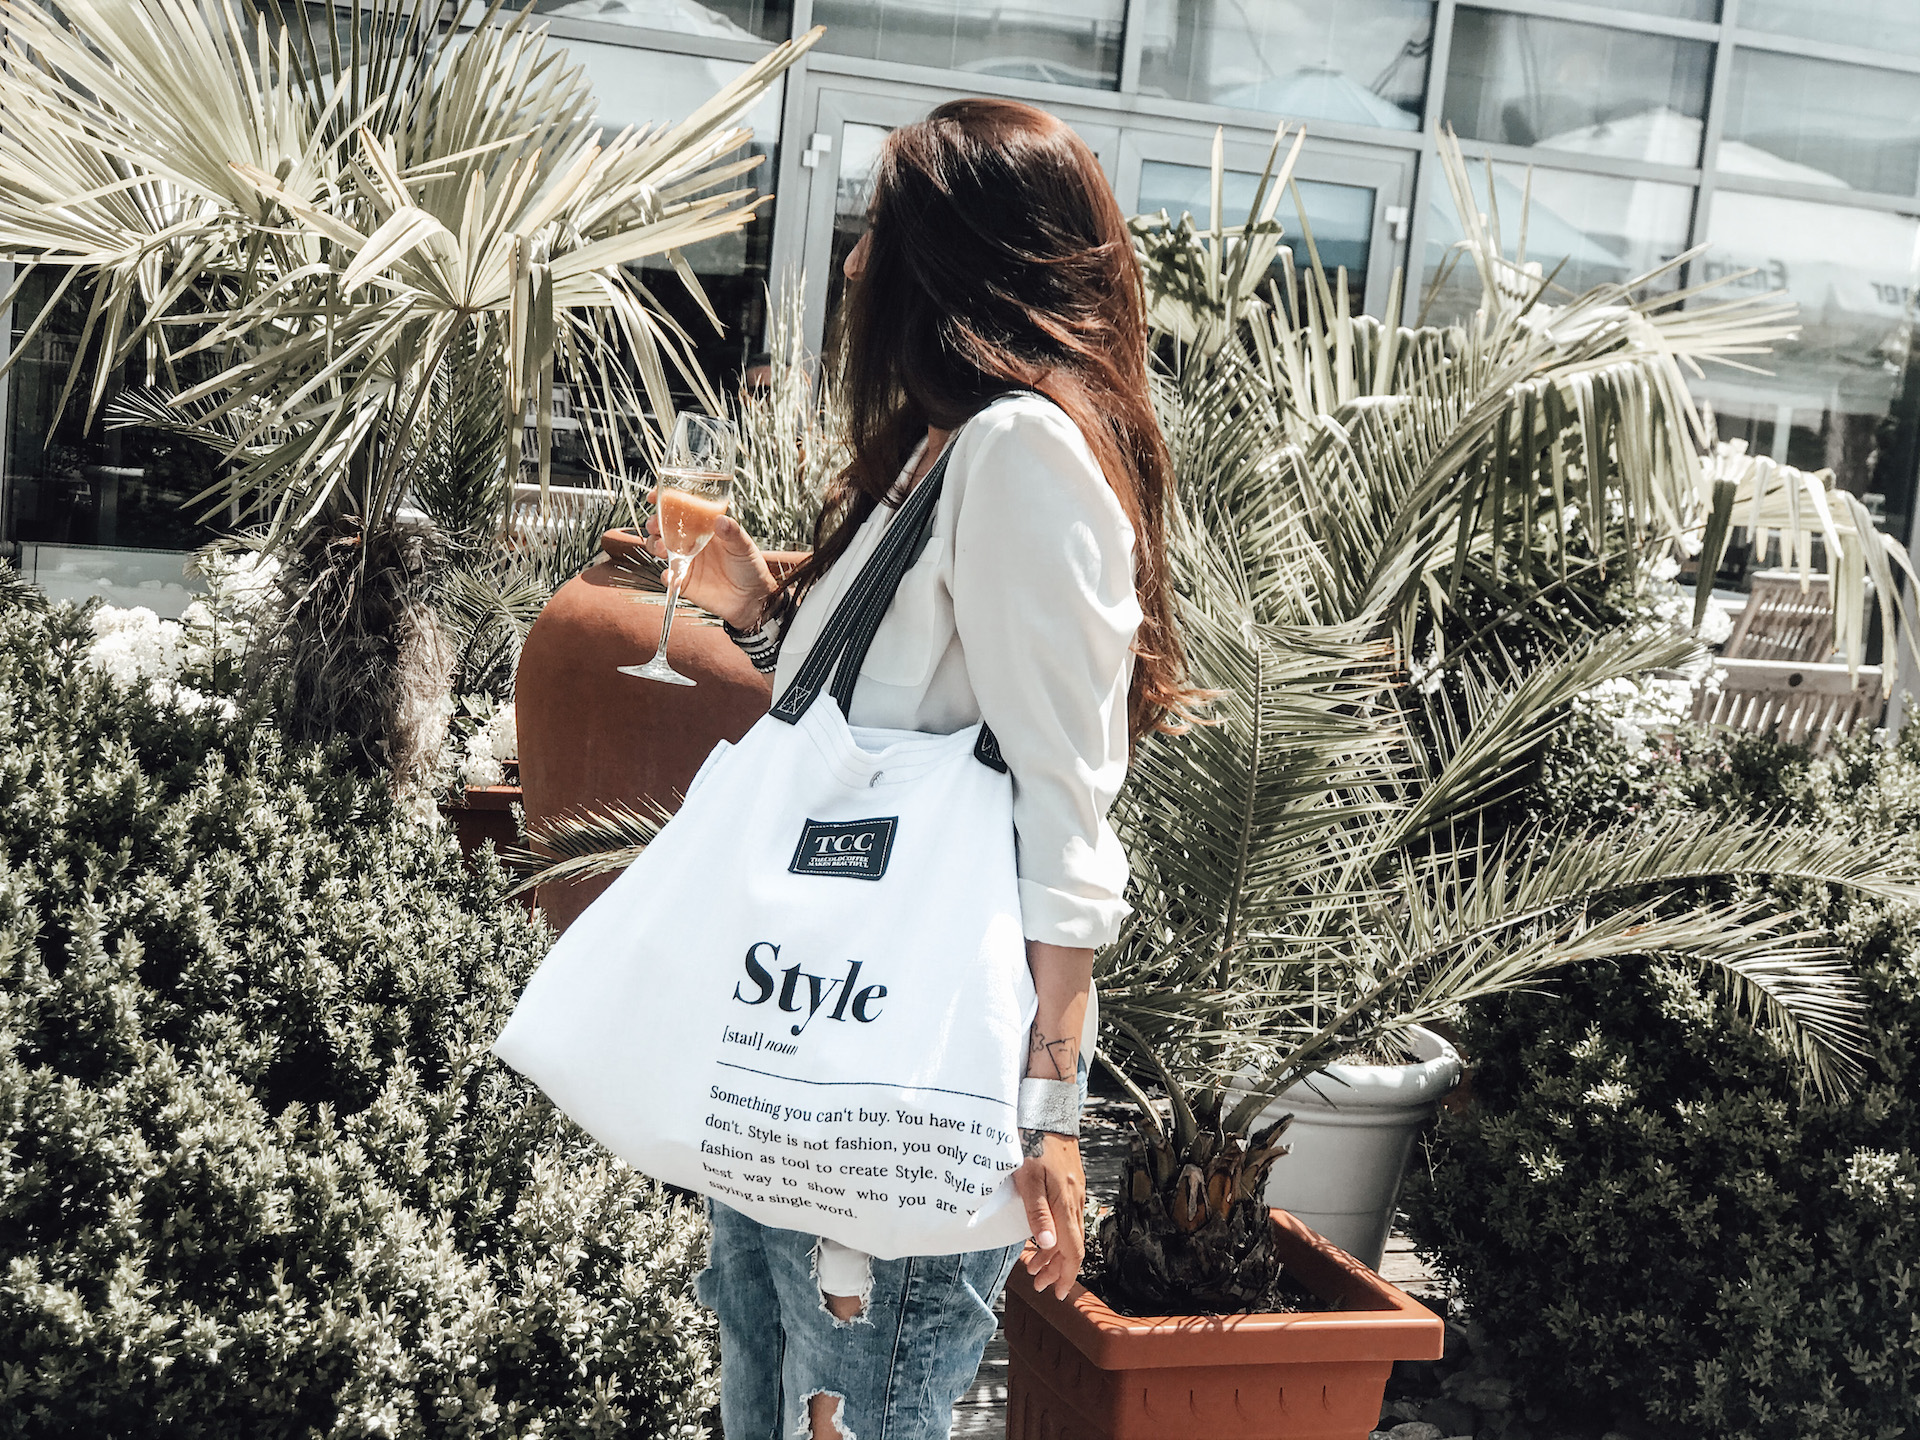 style-tasche-outfit